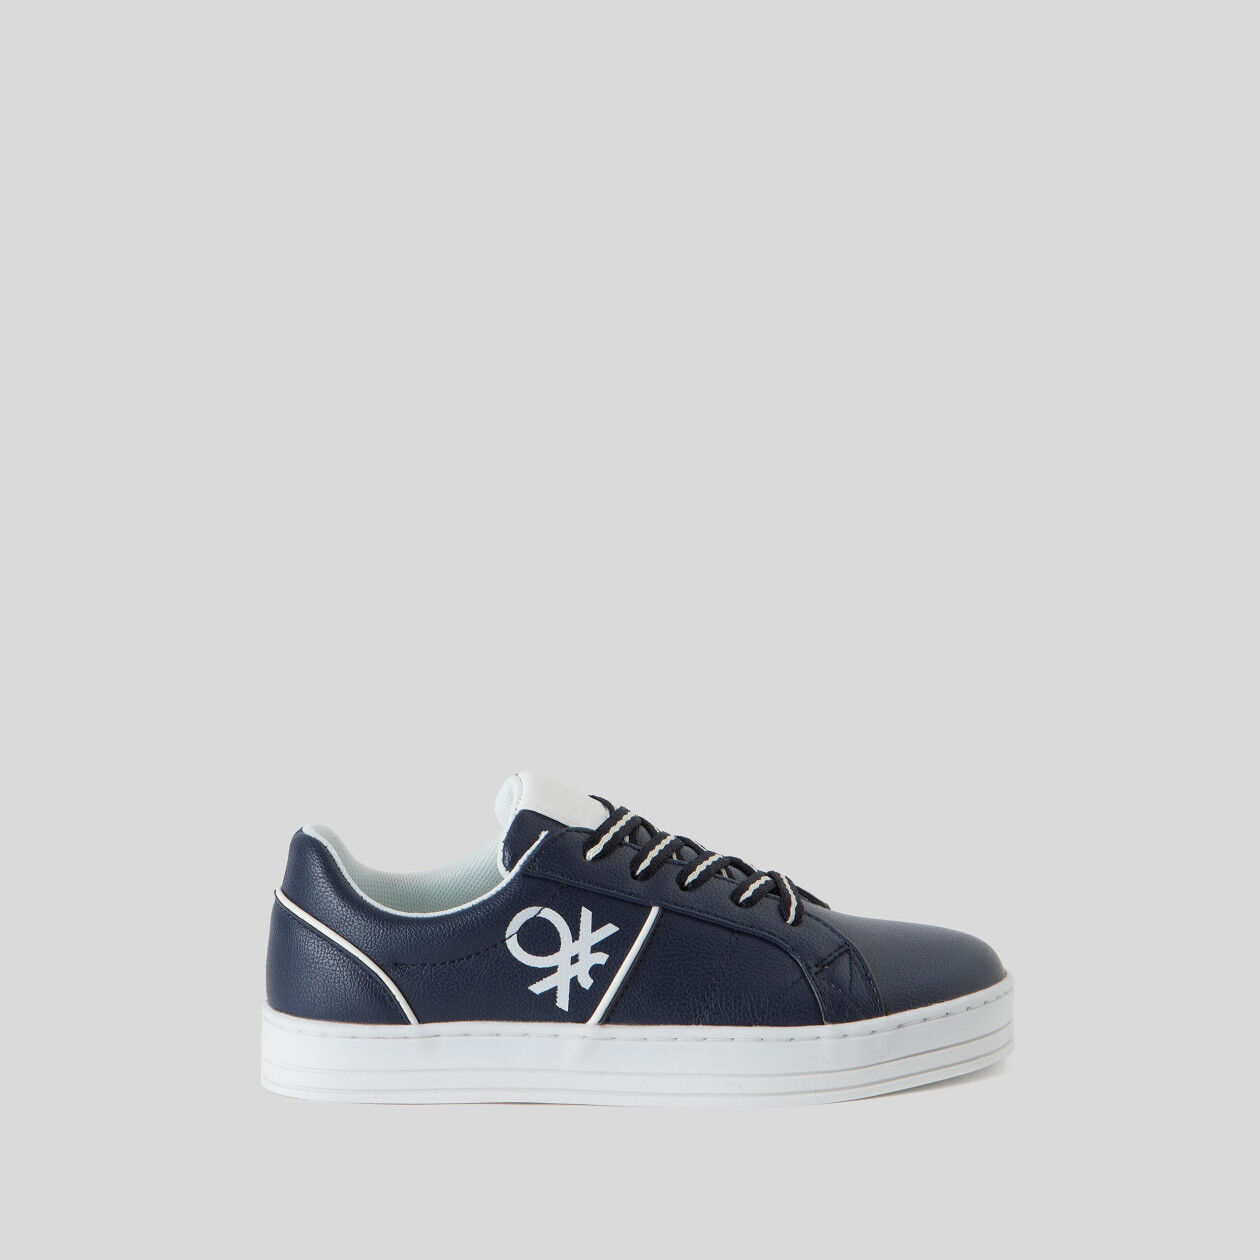 Sneakers with laces and logo